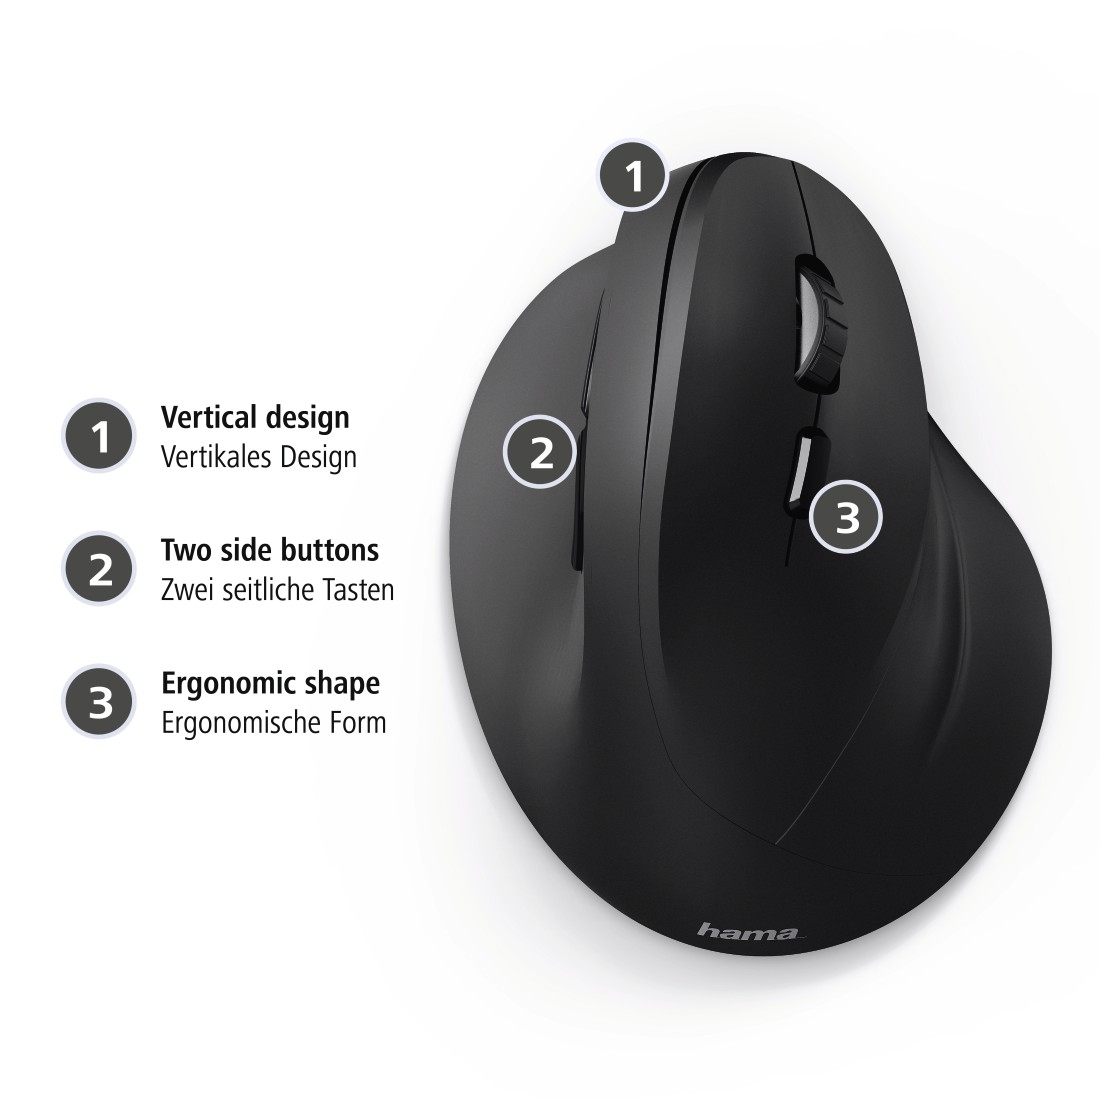 dex2 High-Res Detail 2 - Hama, Vertical, Ergonomic EMC-500 Mouse, Cabled, 6 Buttons, black